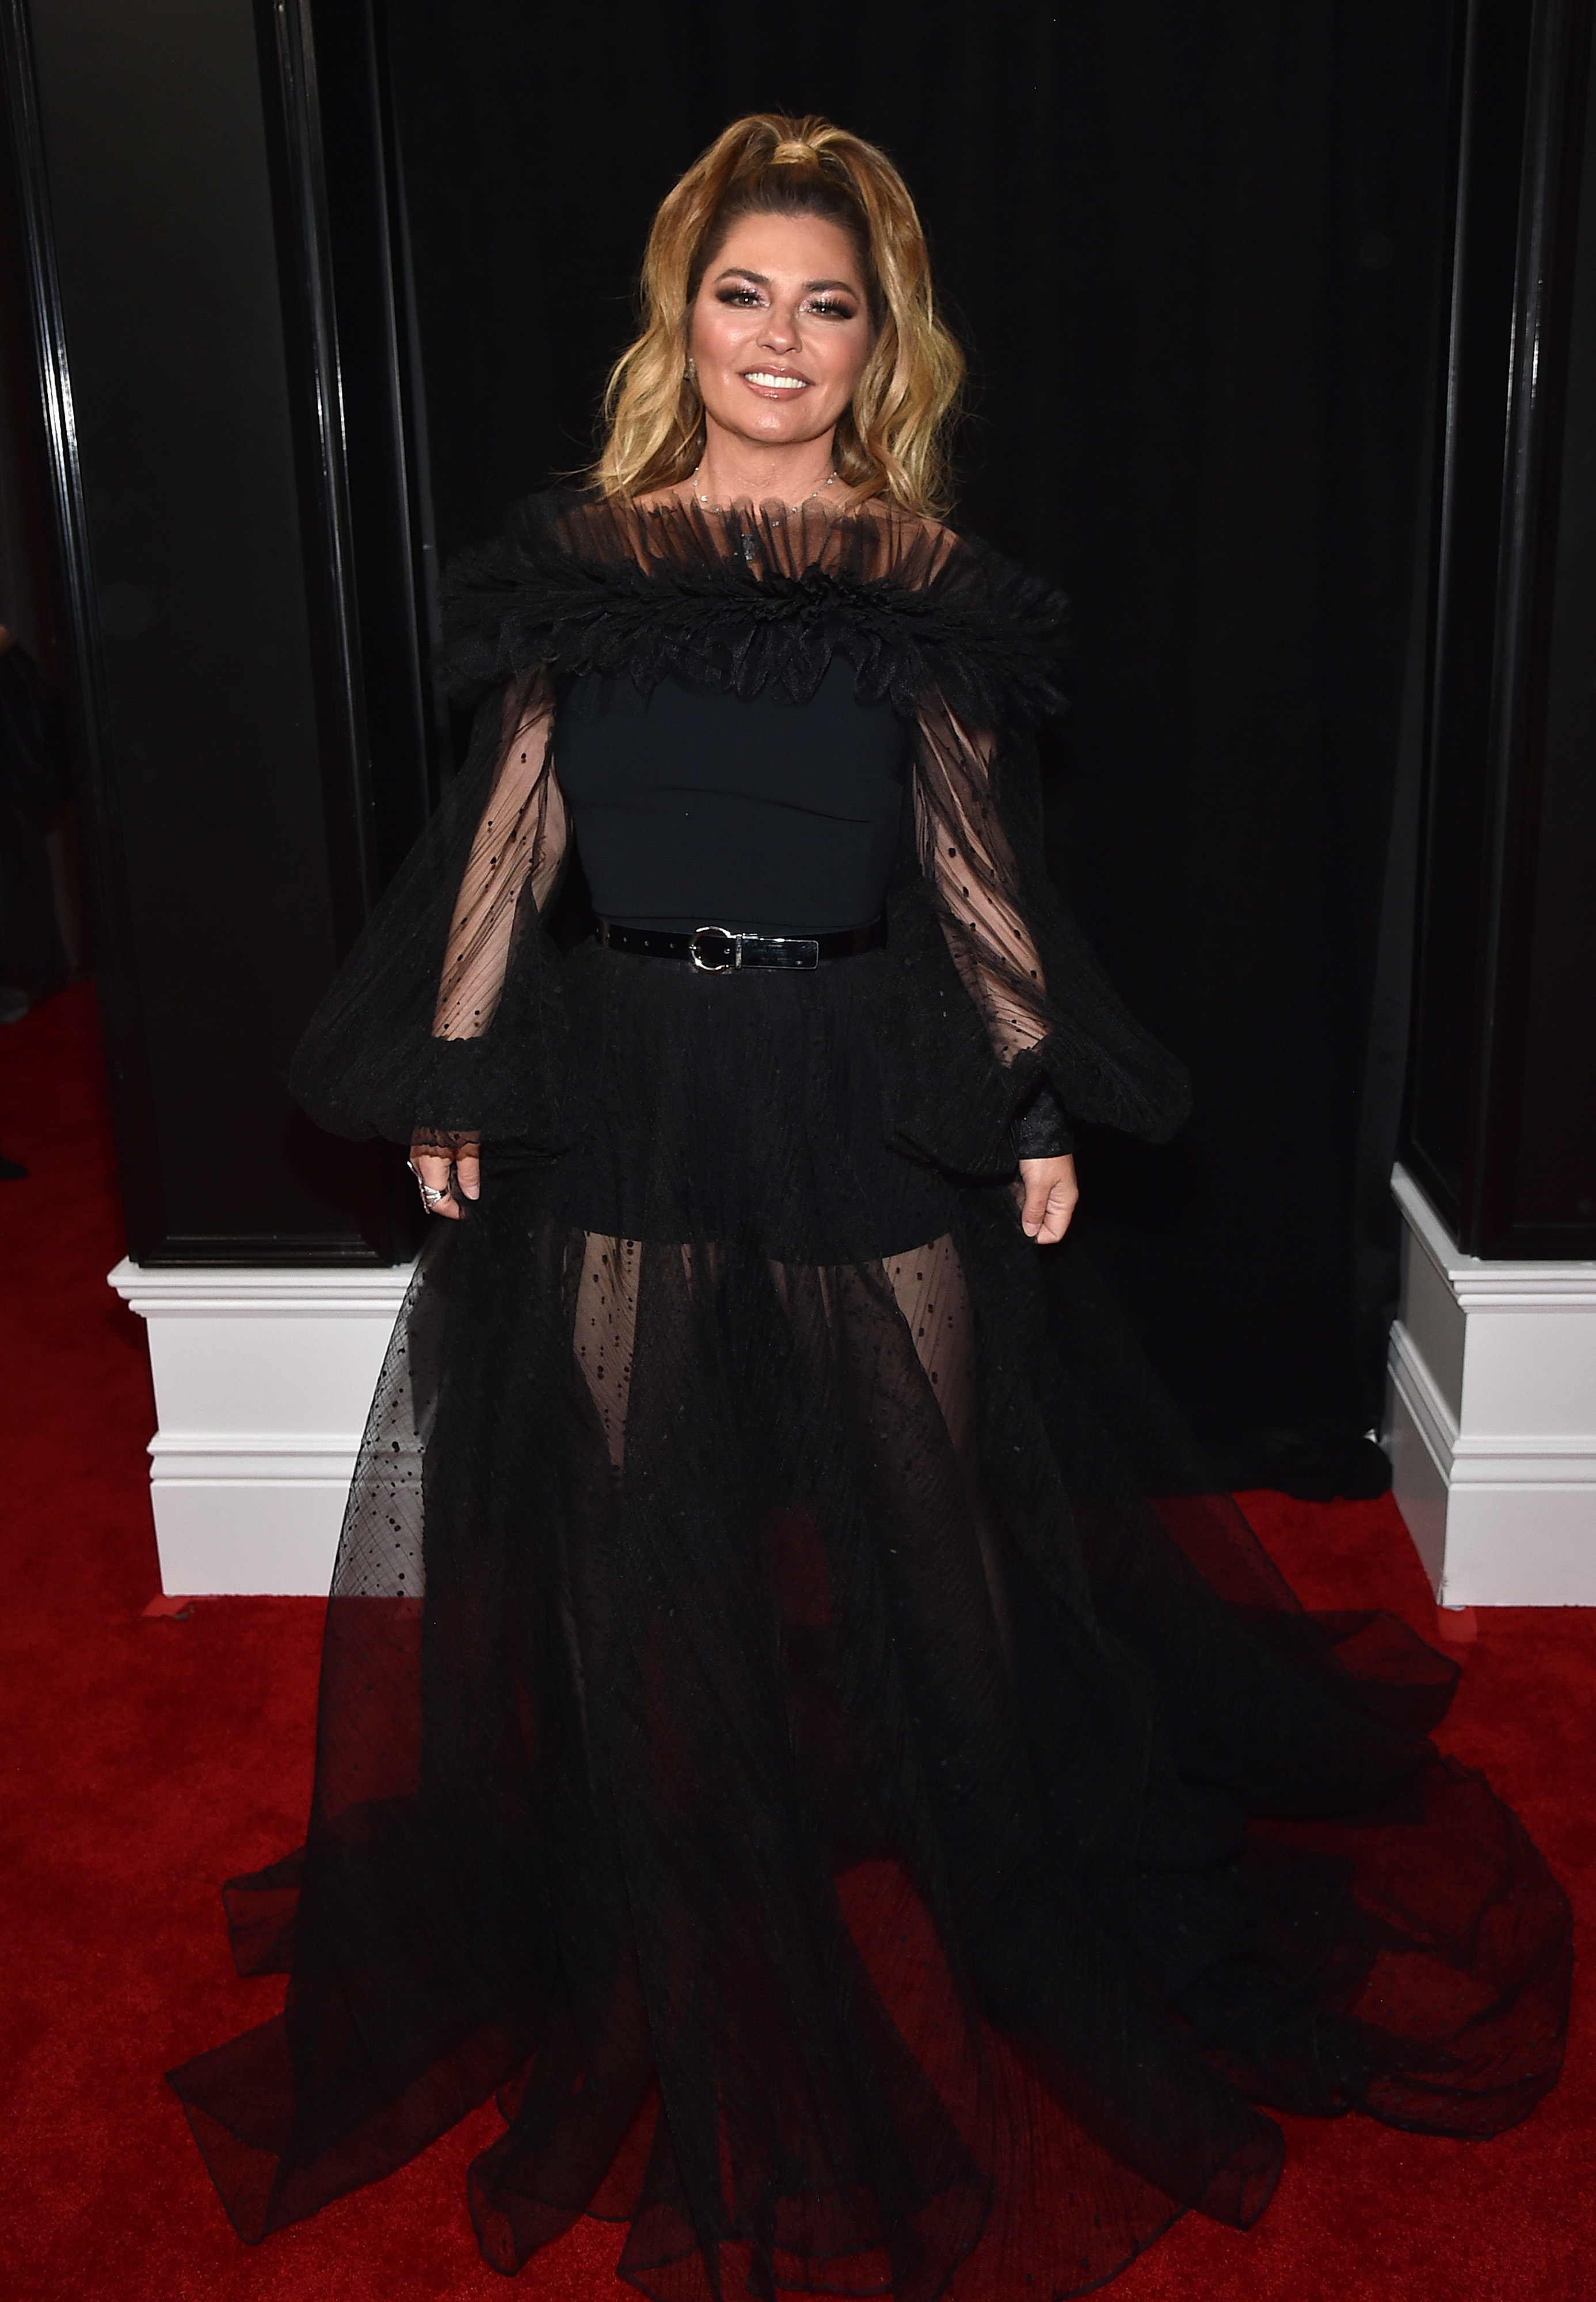 LOS ANGELES, CALIFORNIA - JANUARY 26: Shania Twain attends the 62nd Annual GRAMMY Awards at STAPLES Center on January 26, 2020 in Los Angeles, California. (Photo by John Shearer/Getty Images for The Recording Academy)